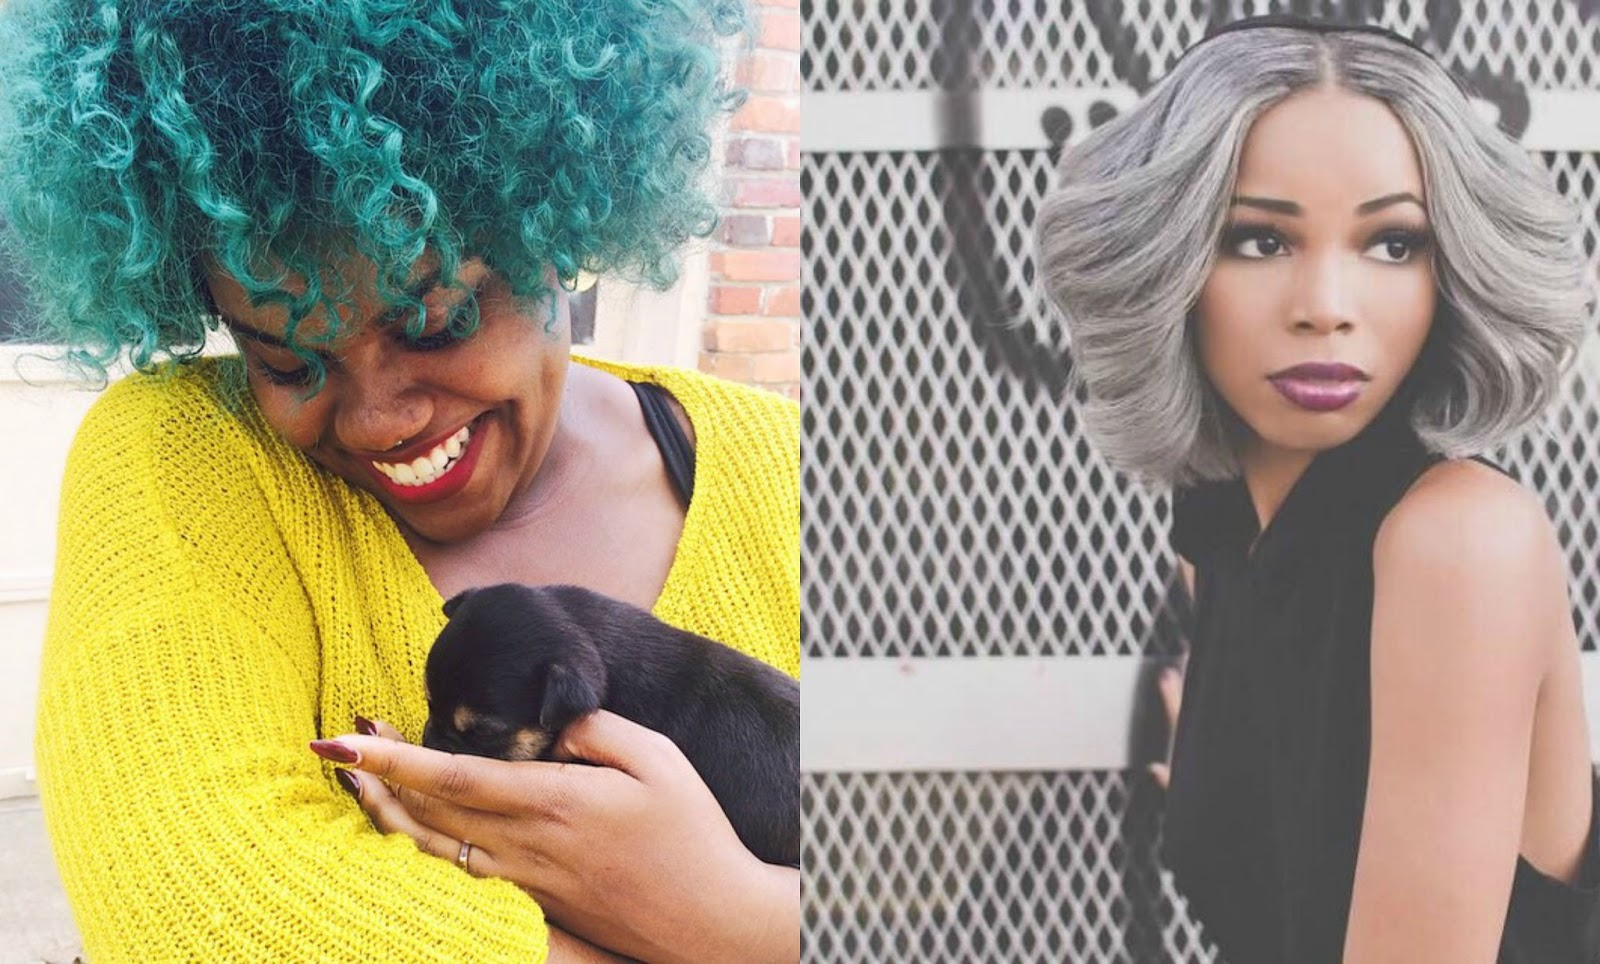 Colored Haired On Black Women= Ghetto & Ratchet?